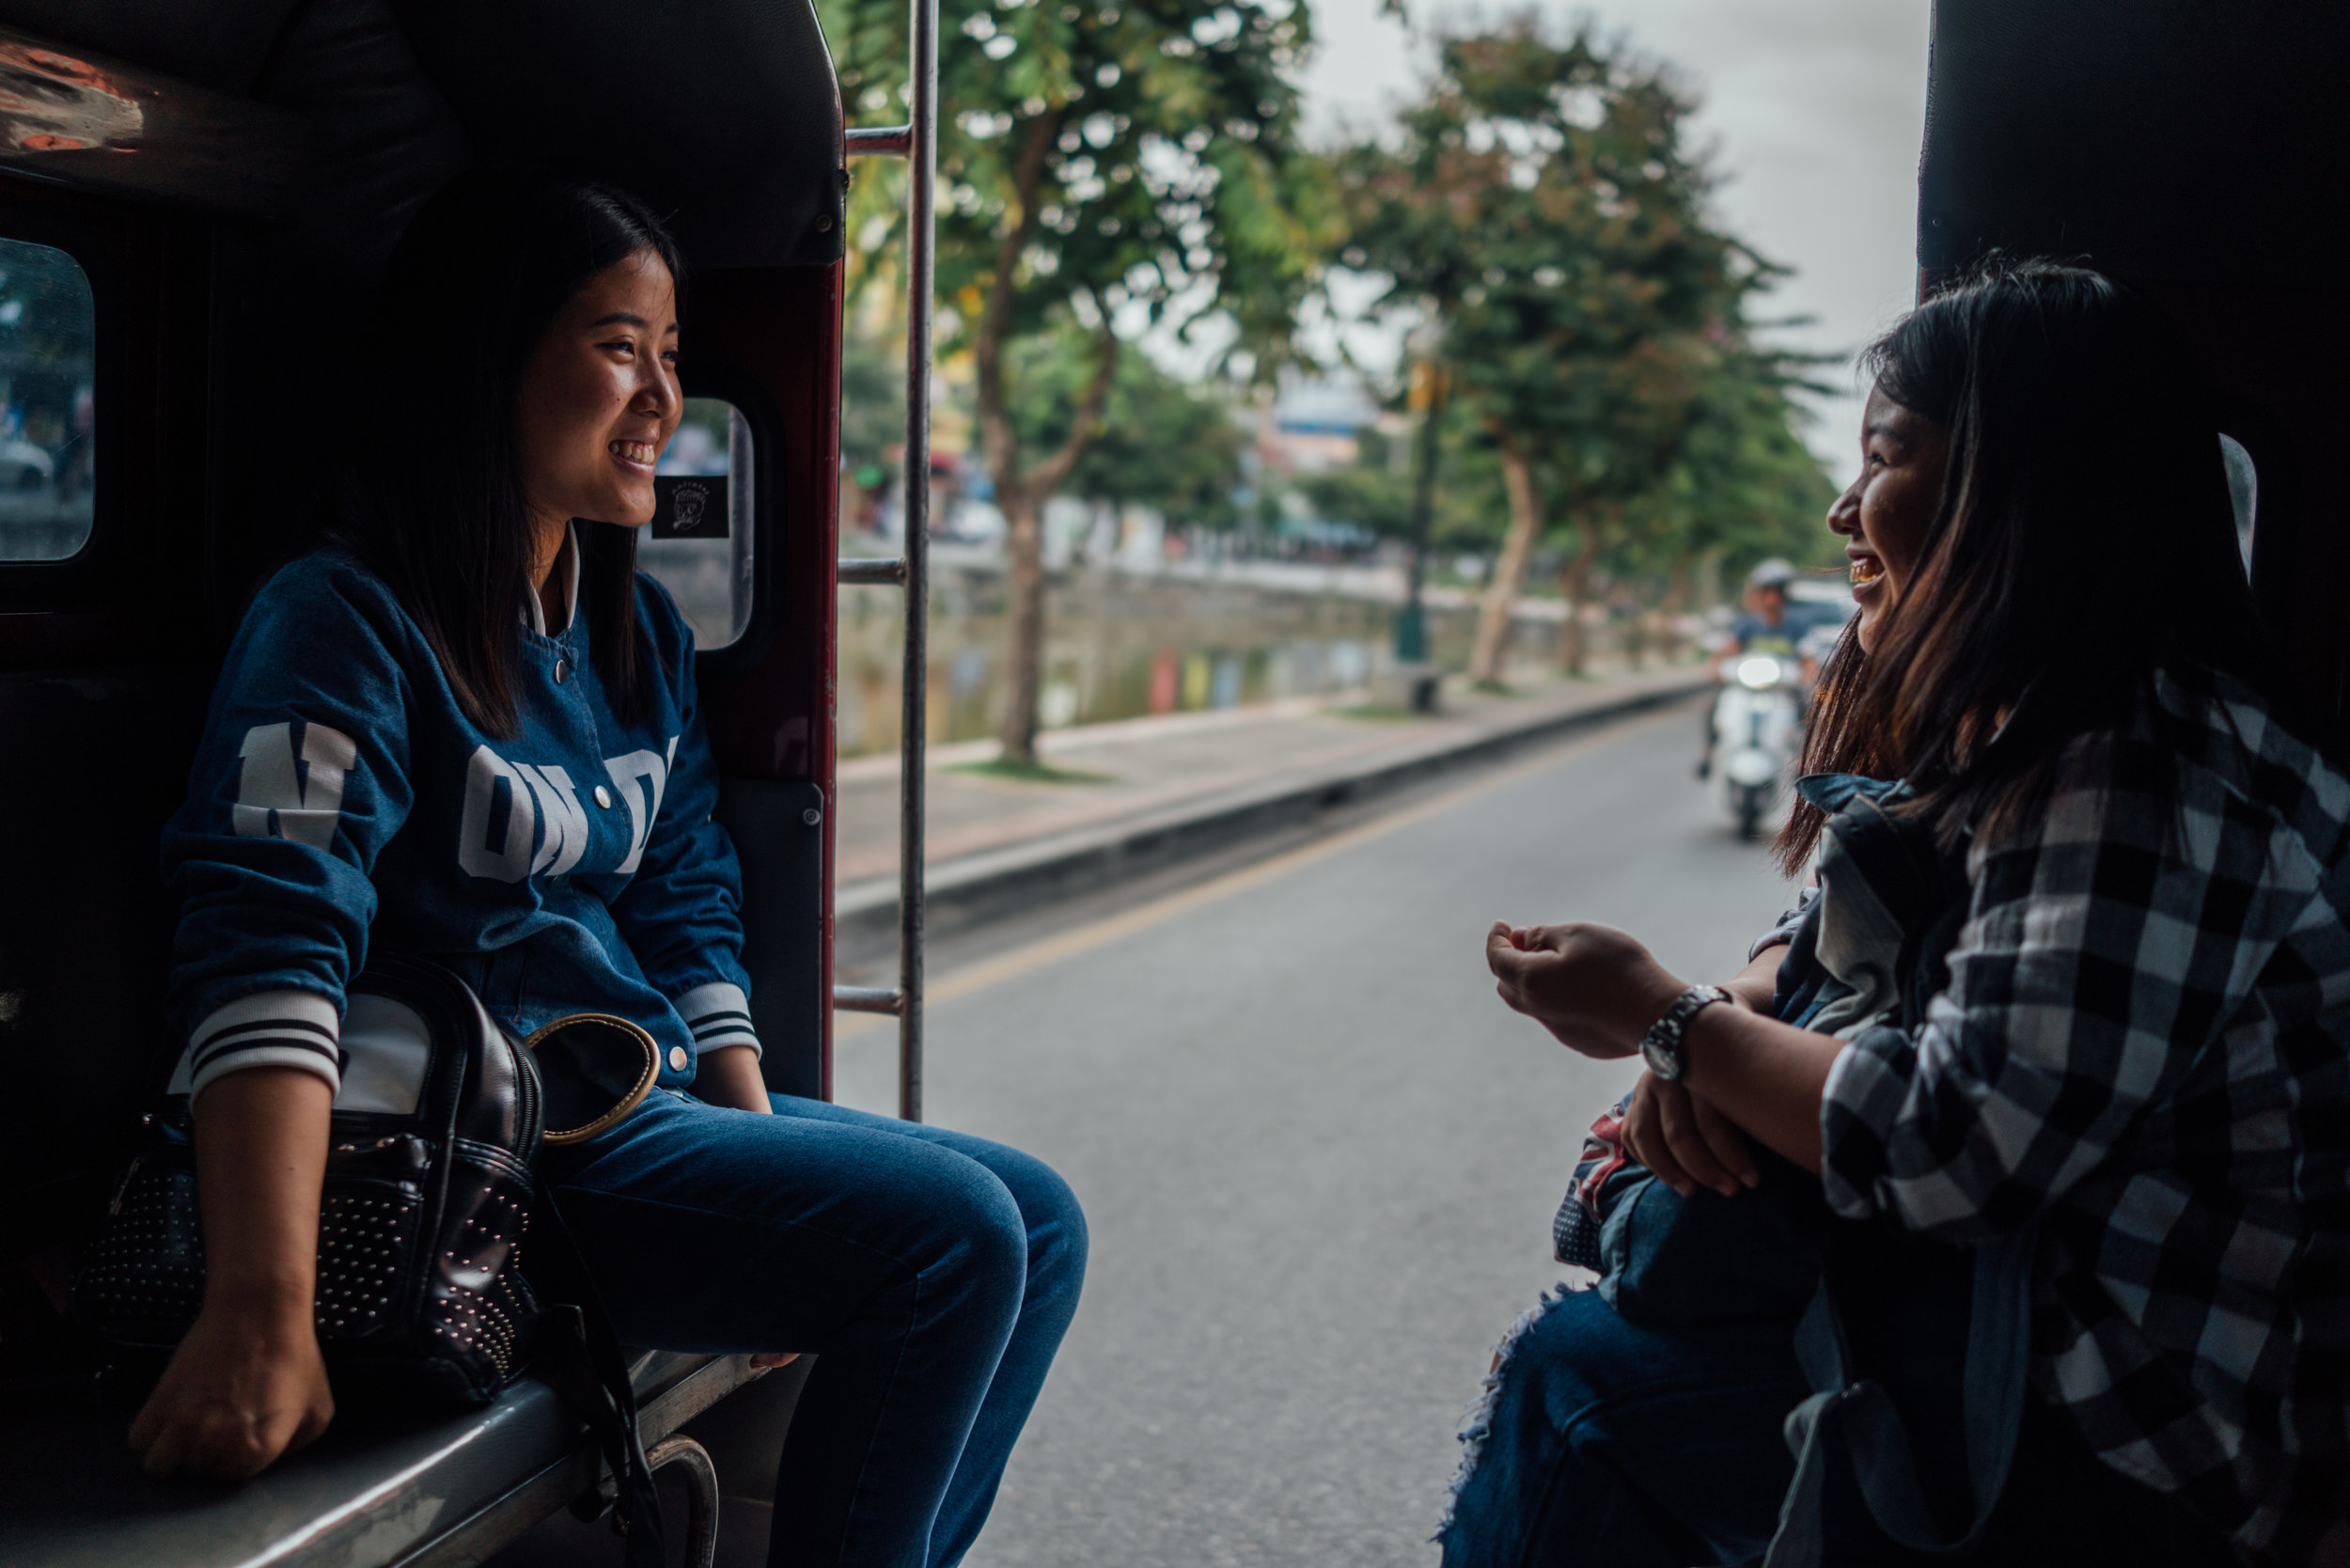 Beautiful smiles during a  songthaew  ride